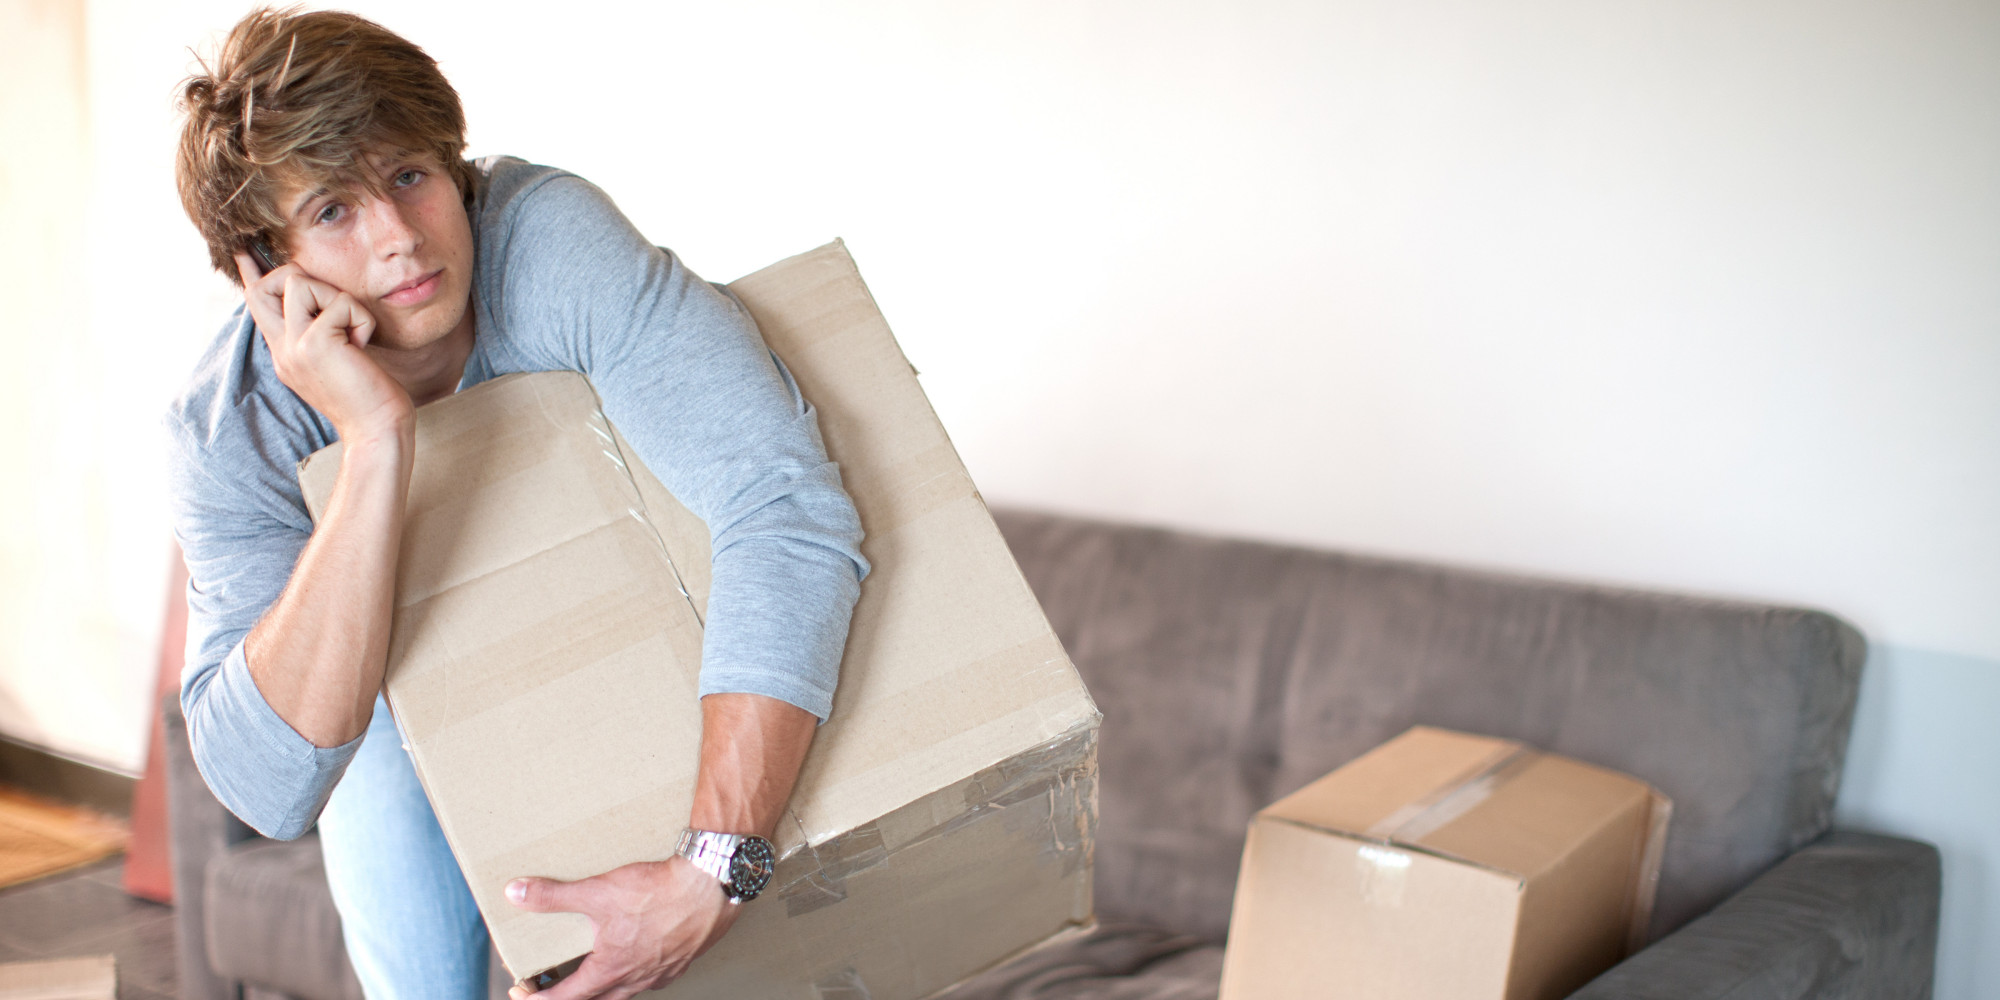 image of a man holding a box in the sofa